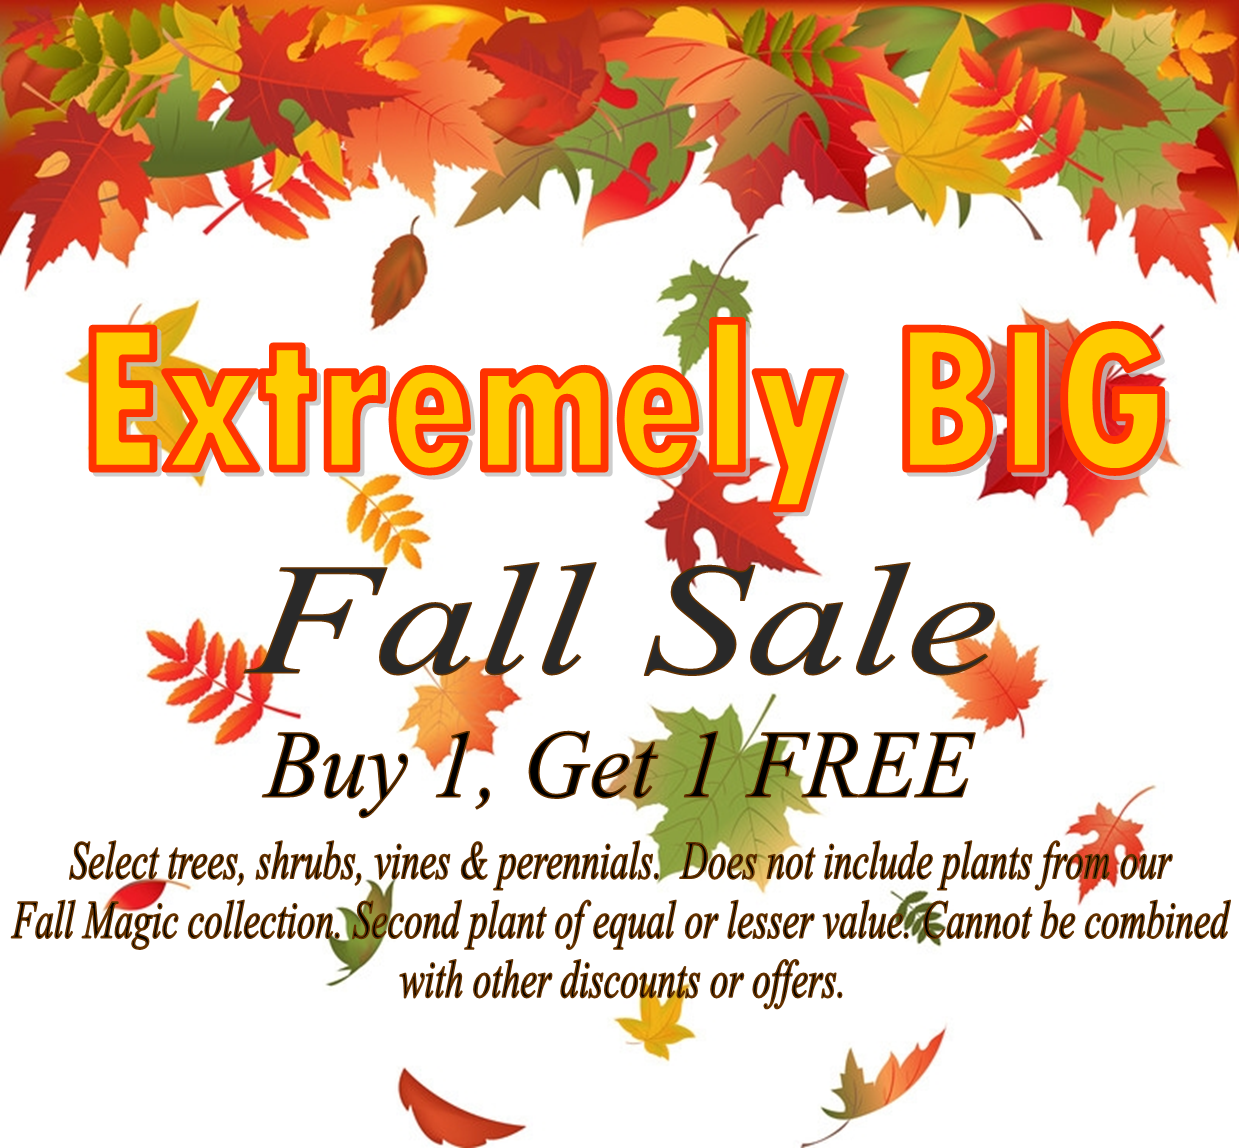 Extremely Big Fall Sale